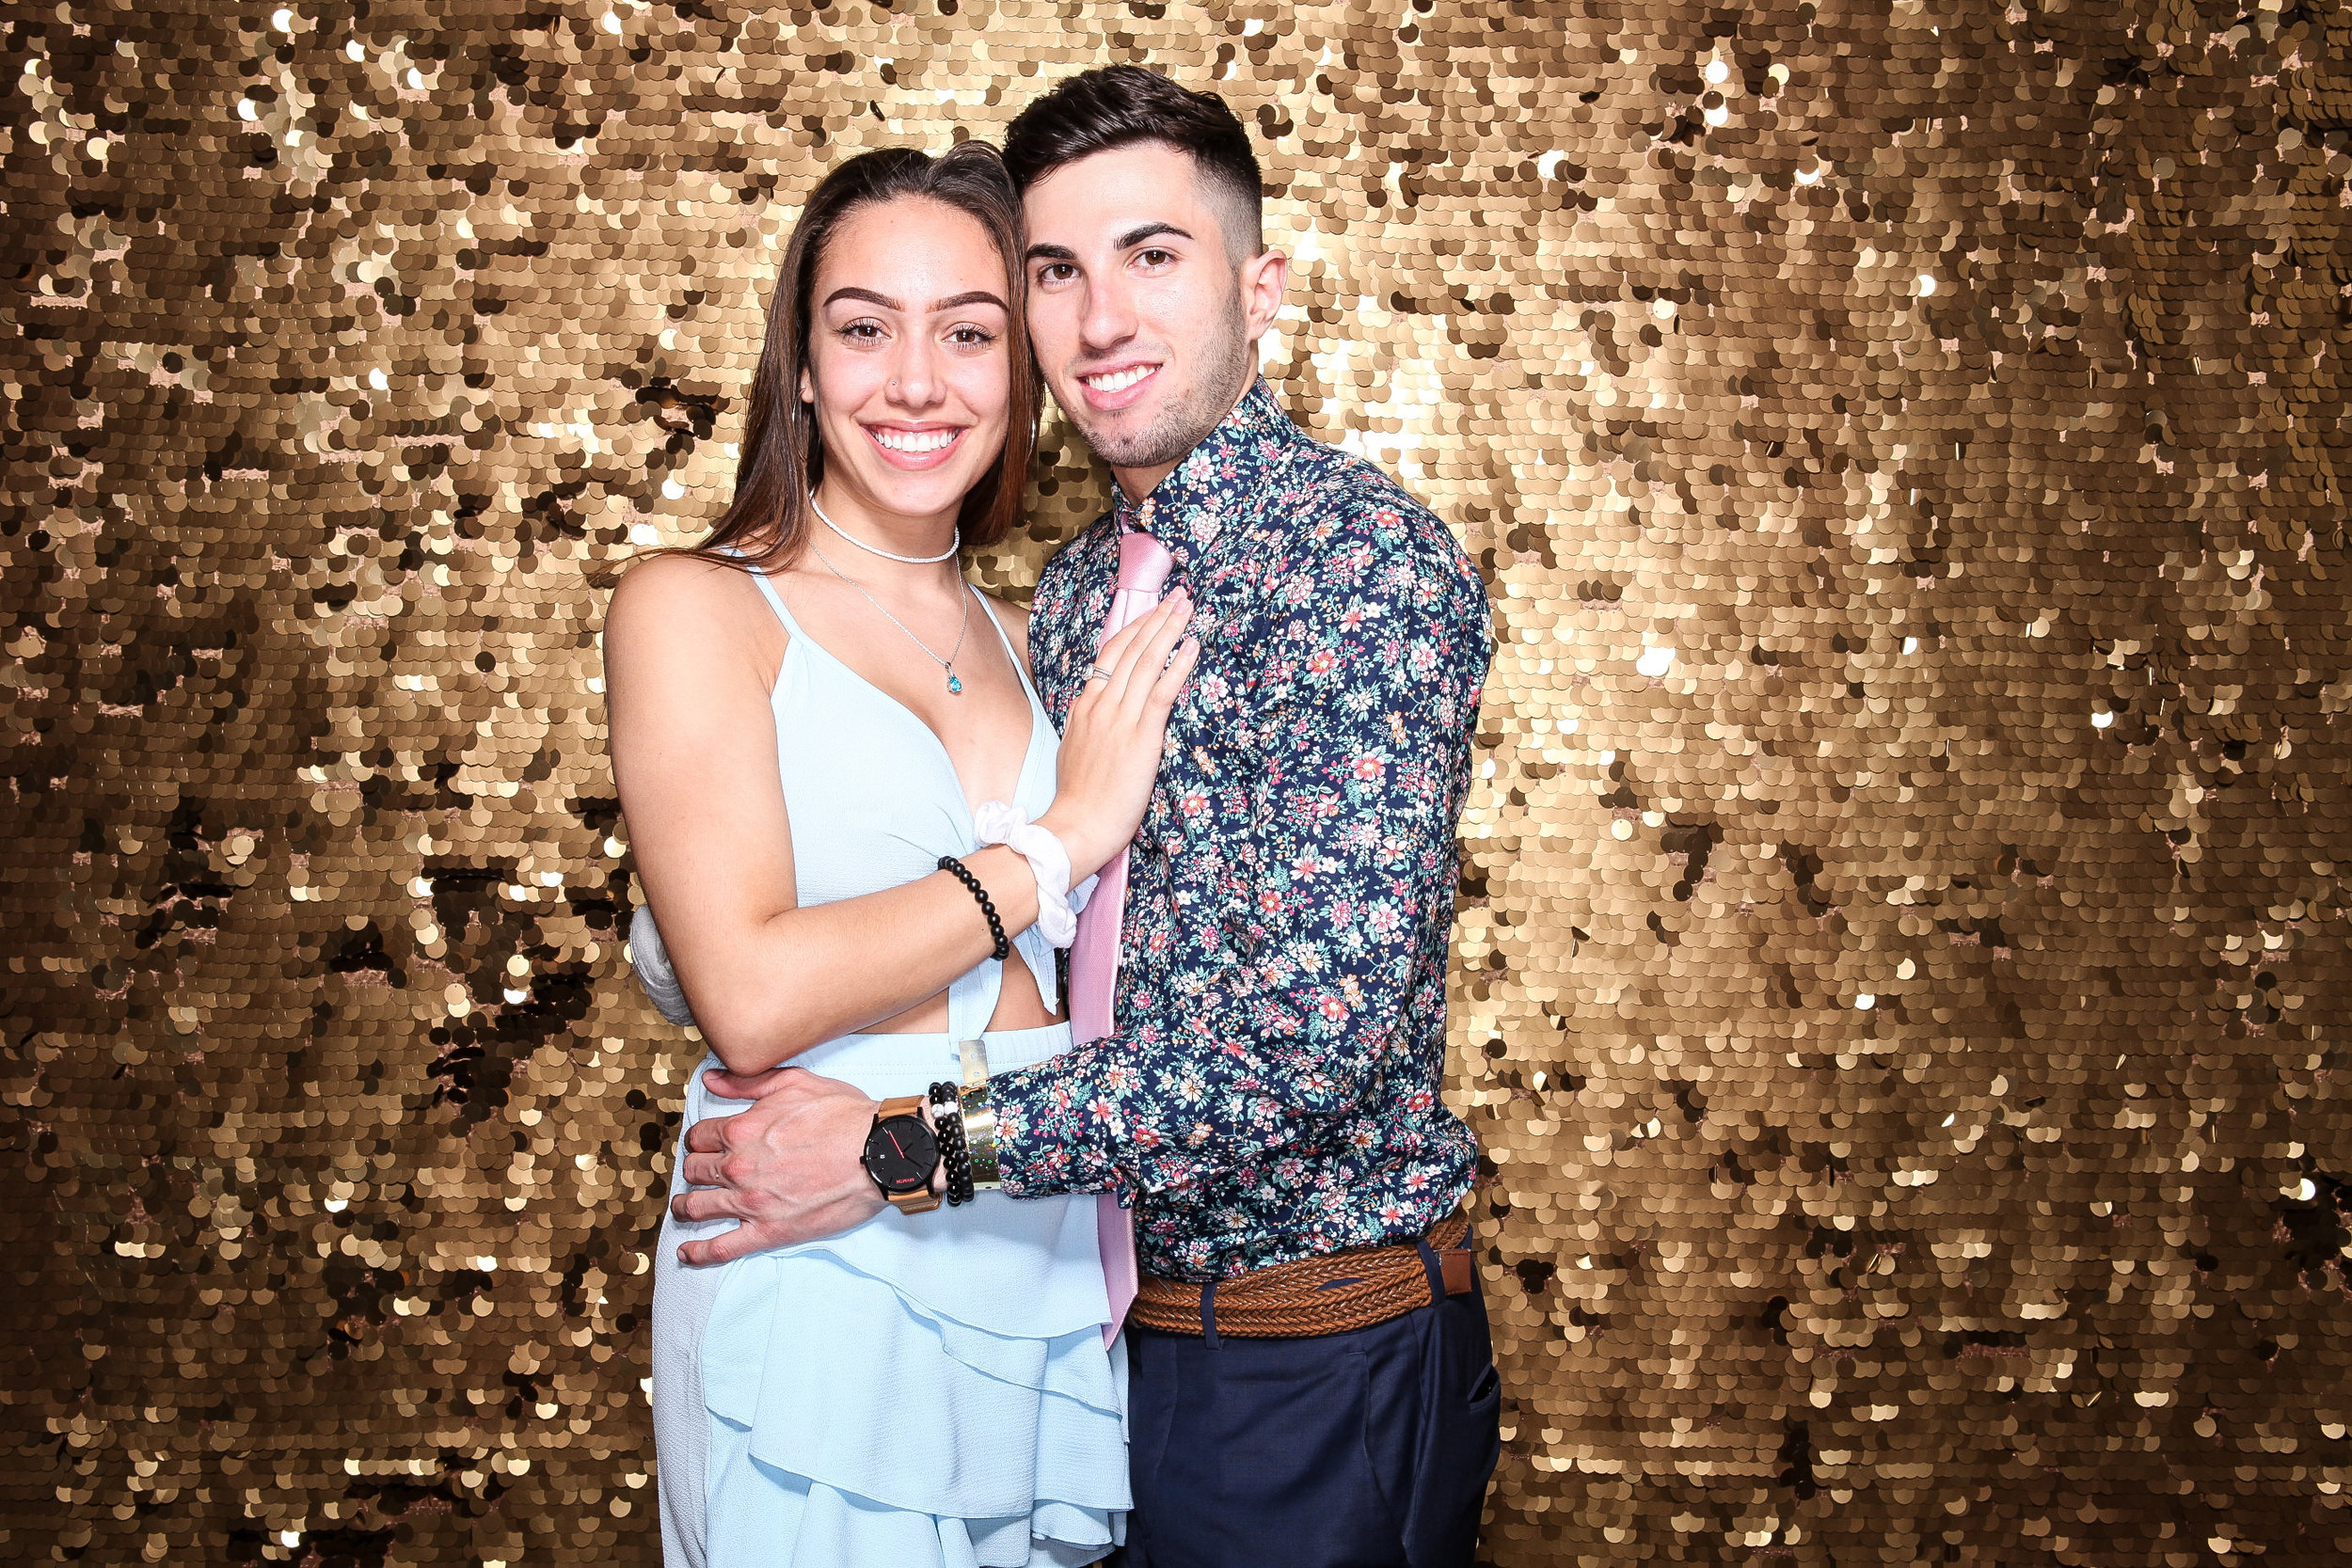 20190503_Adelphi_Senior_Formal-069.jpg